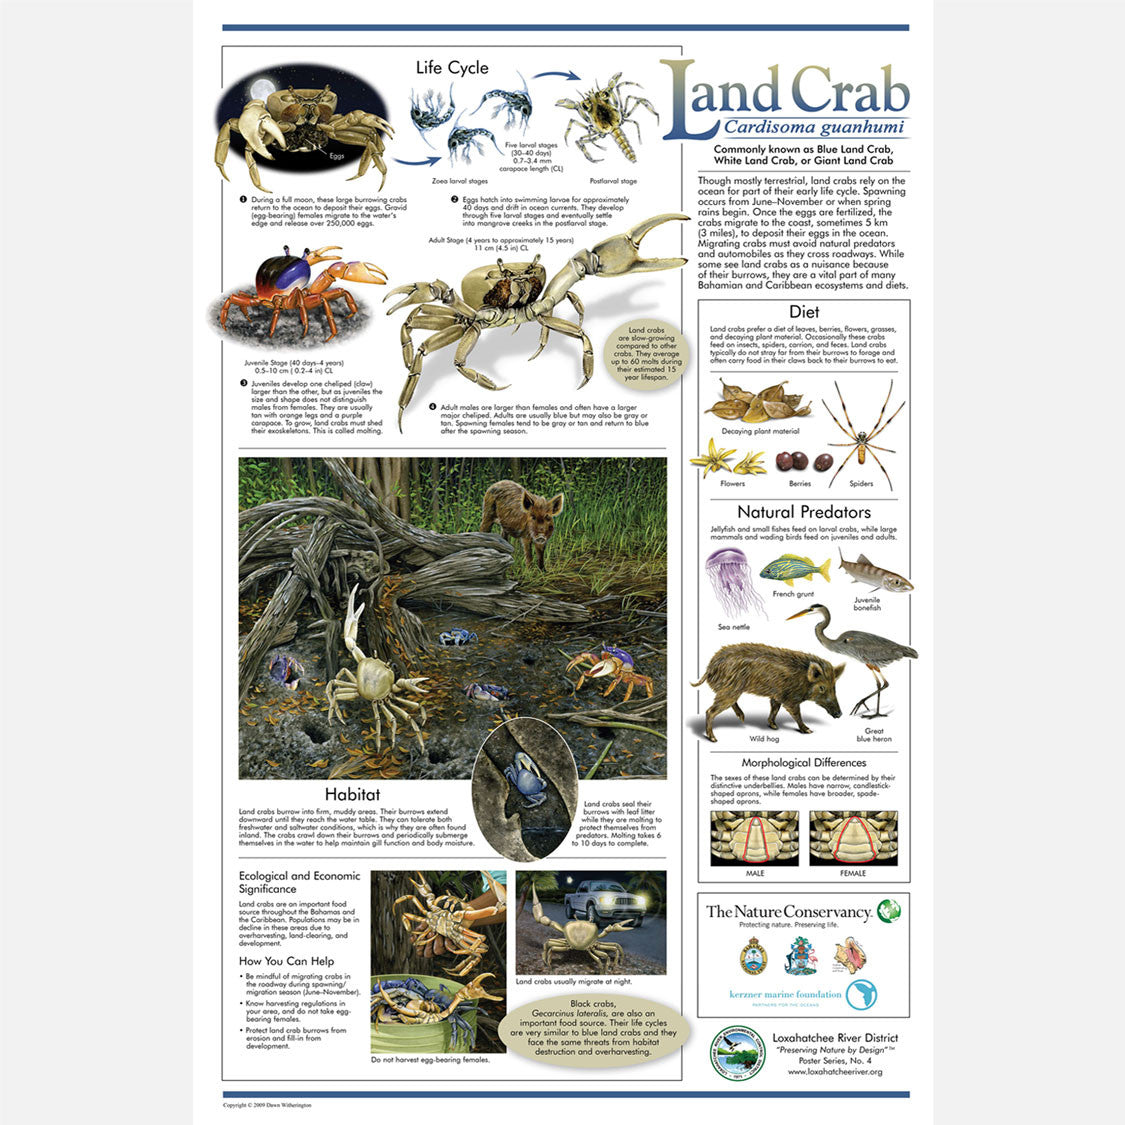 This beautiful poster provides information about blue land crabs, Cardisoma guanhumi.